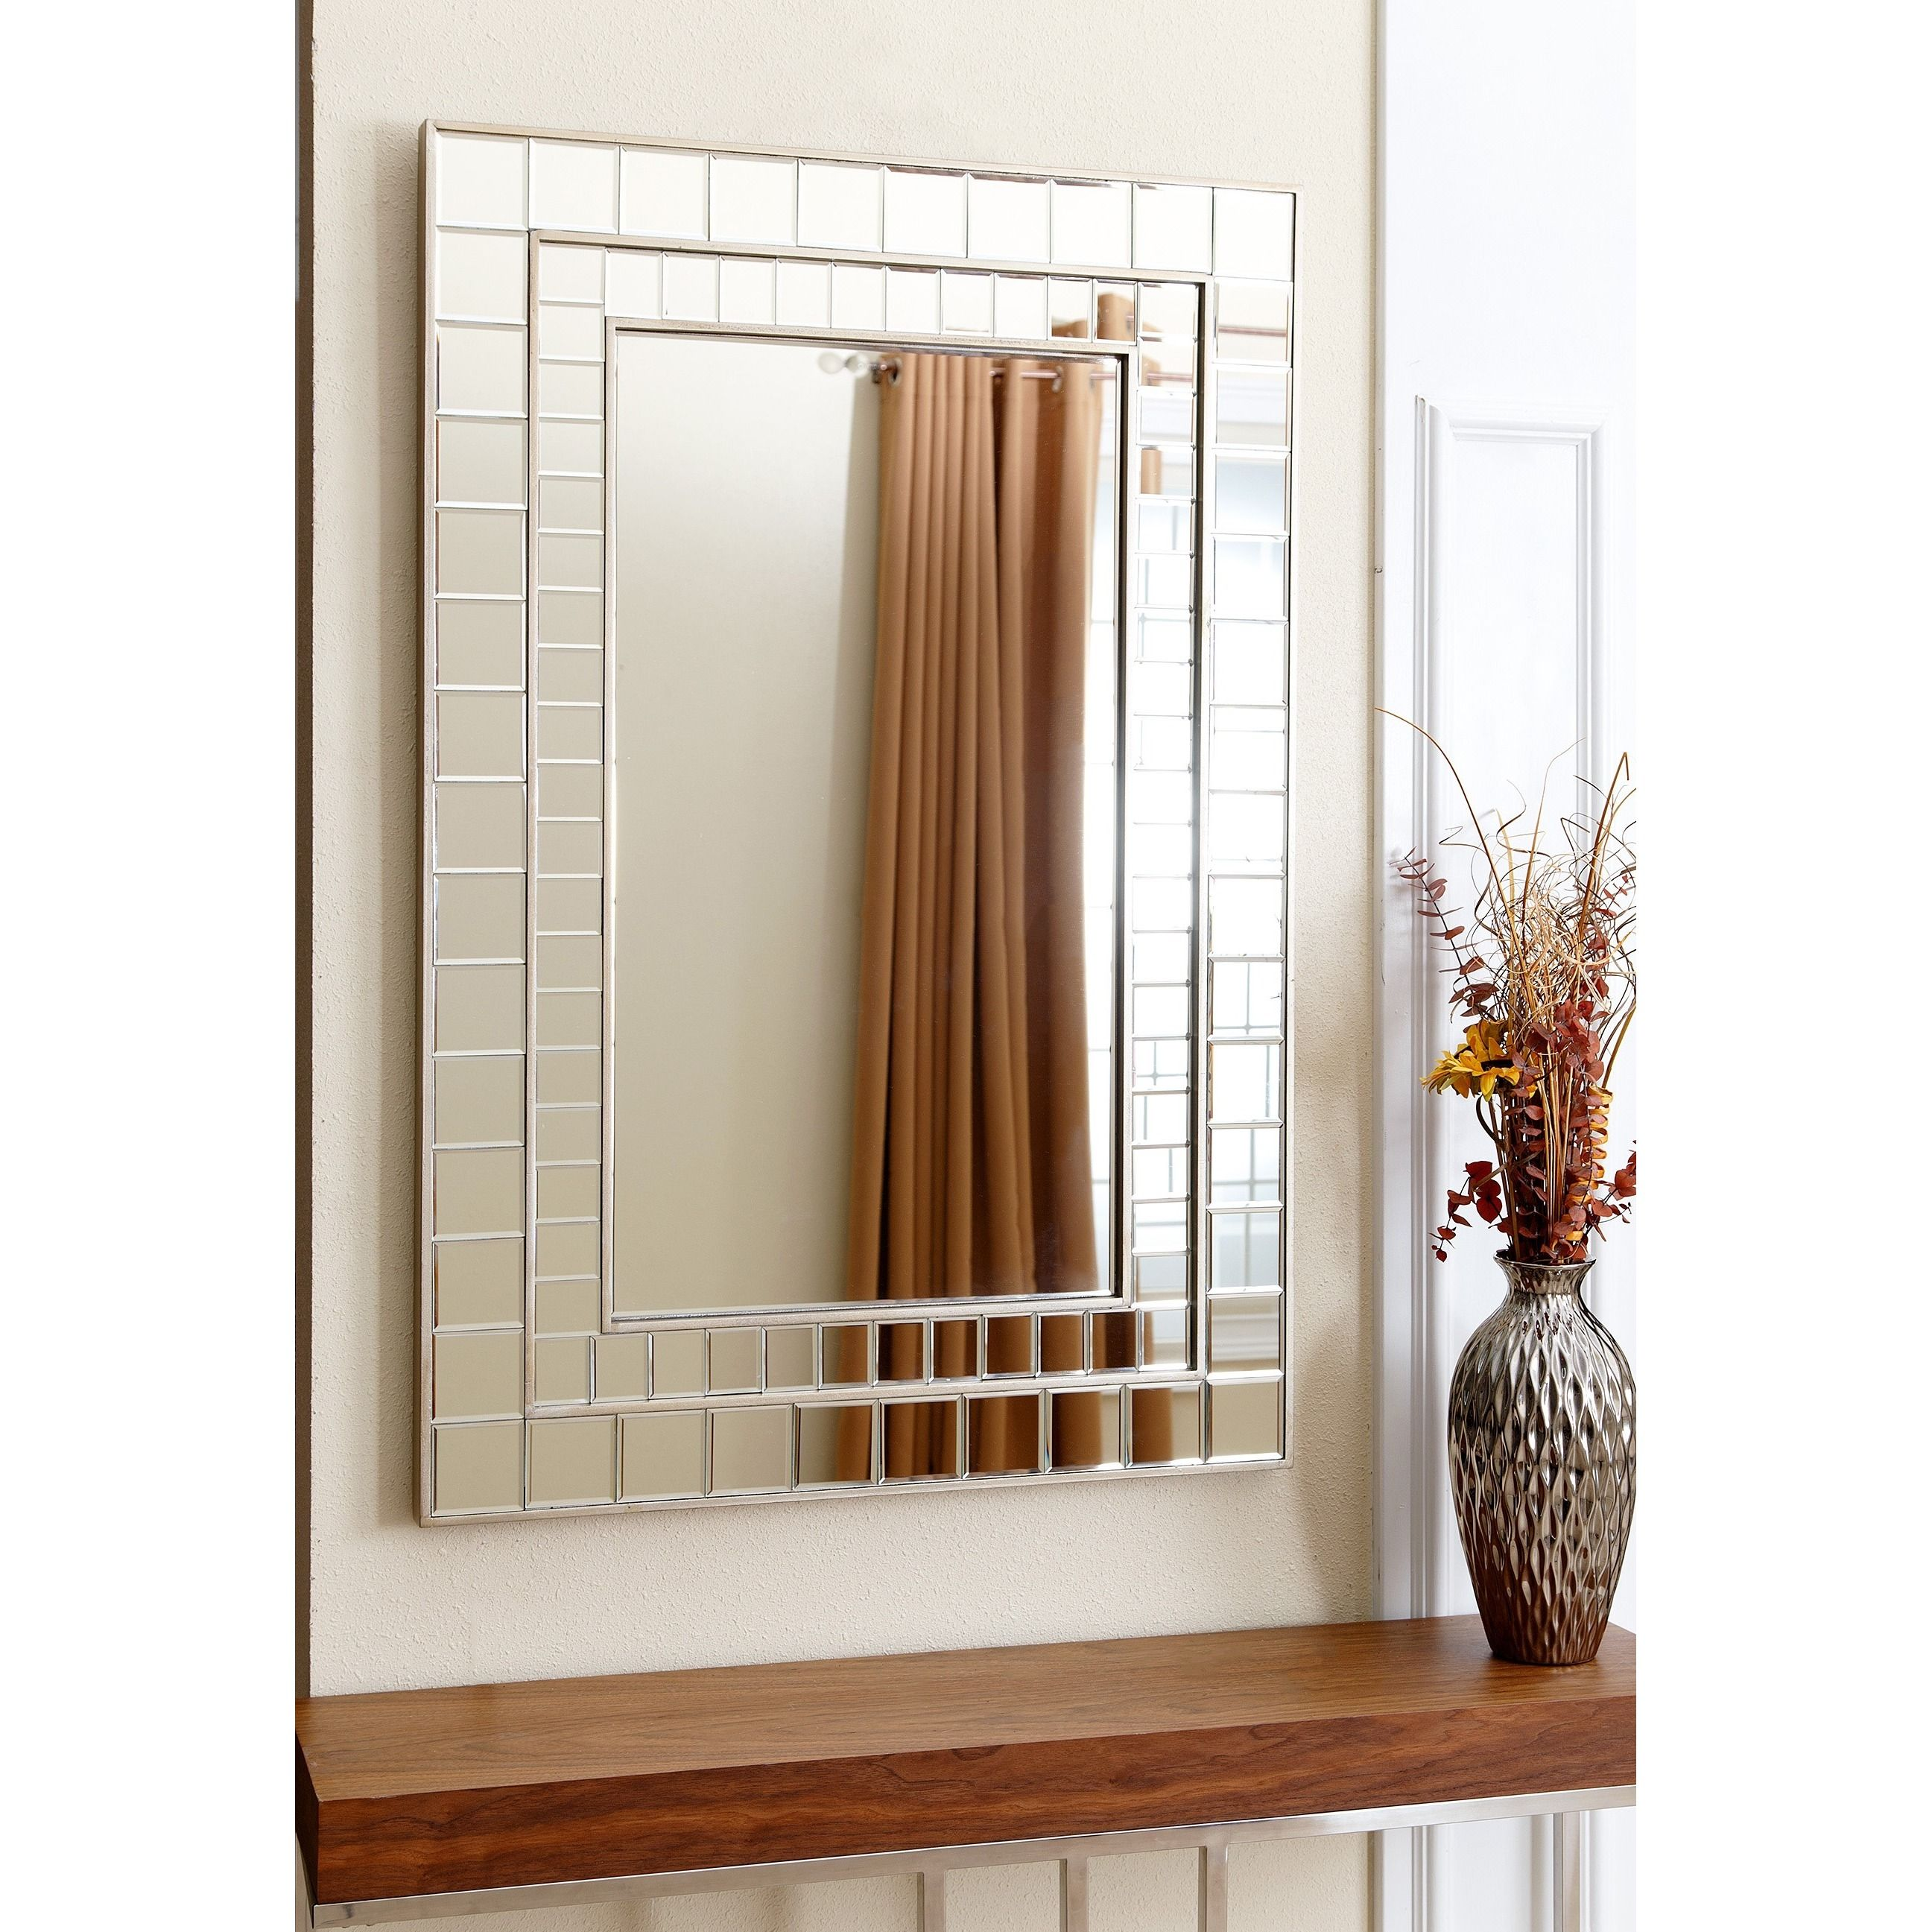 This Abbyson Living Mirror Will Be A Stylish Addition To Your Home.  Practice Speeches, Cut Your Own Hair, Or Just Make Sure You Donu0027t Have  Broccoli In Your ...